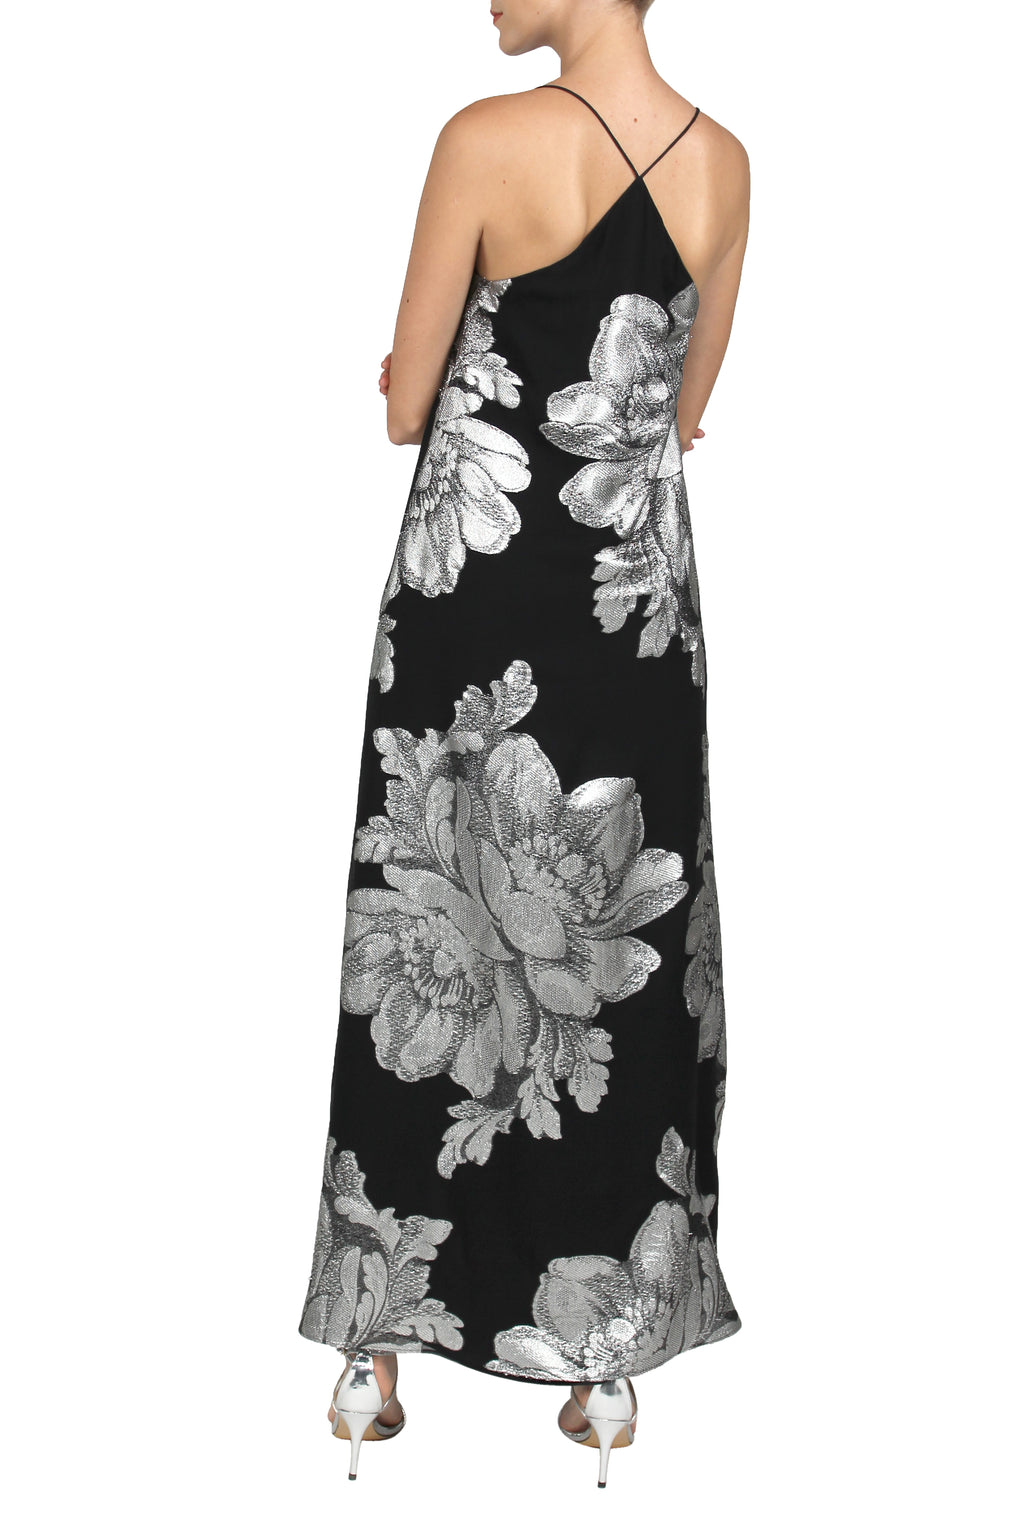 Big Flower Racer Back Sun Dress